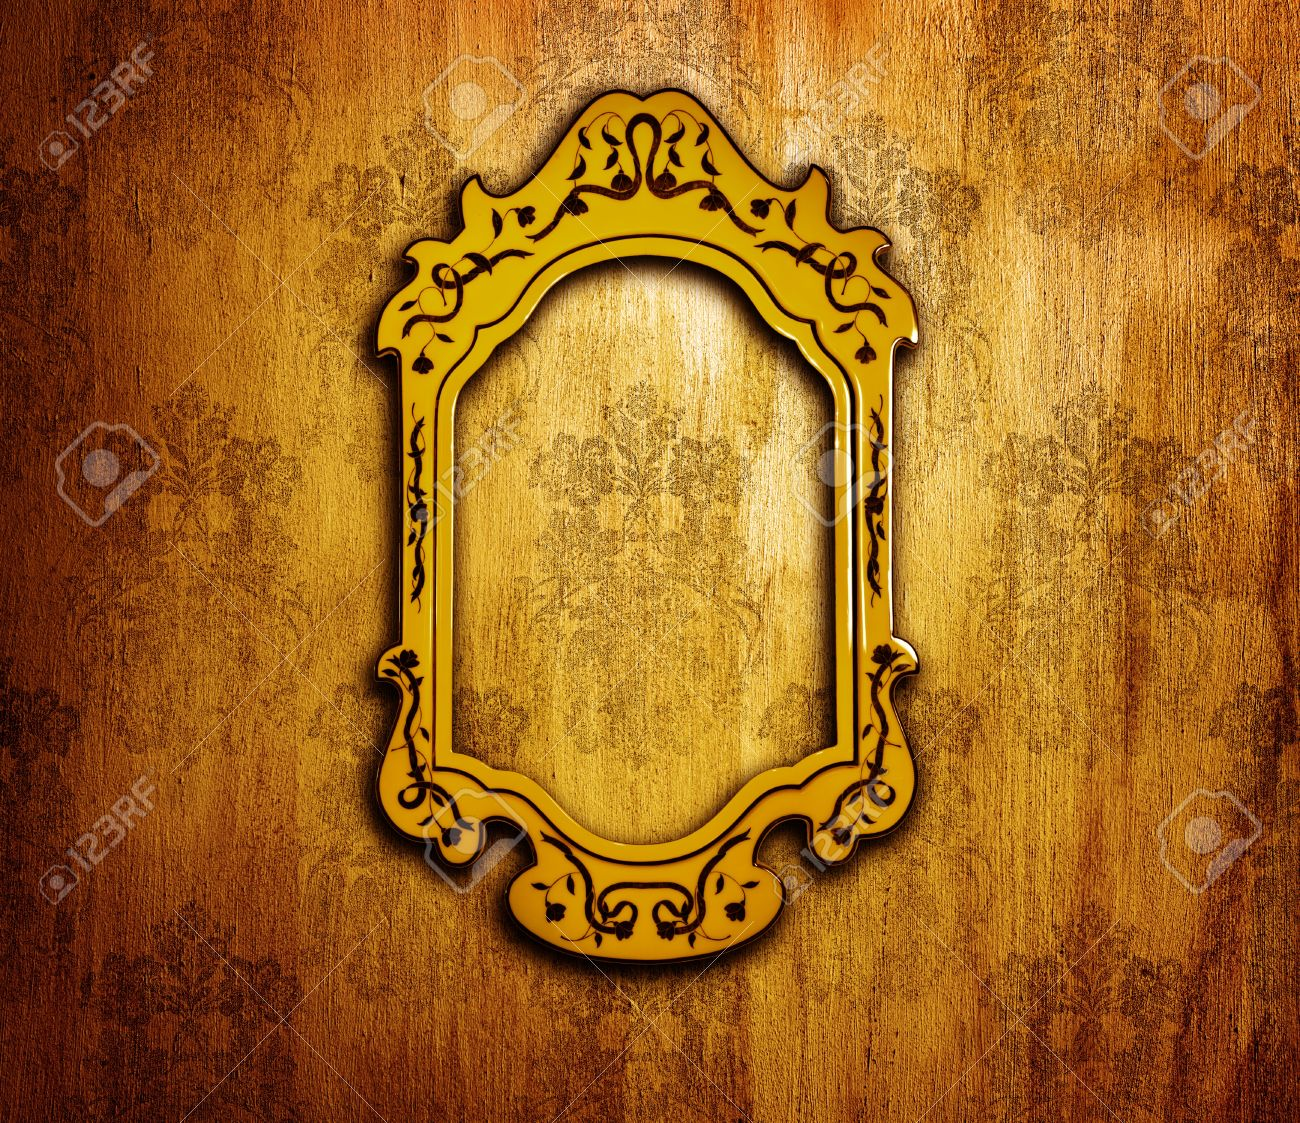 Vintage Interior Design, Old Golden Mirror Frame On Retro Grunge ...